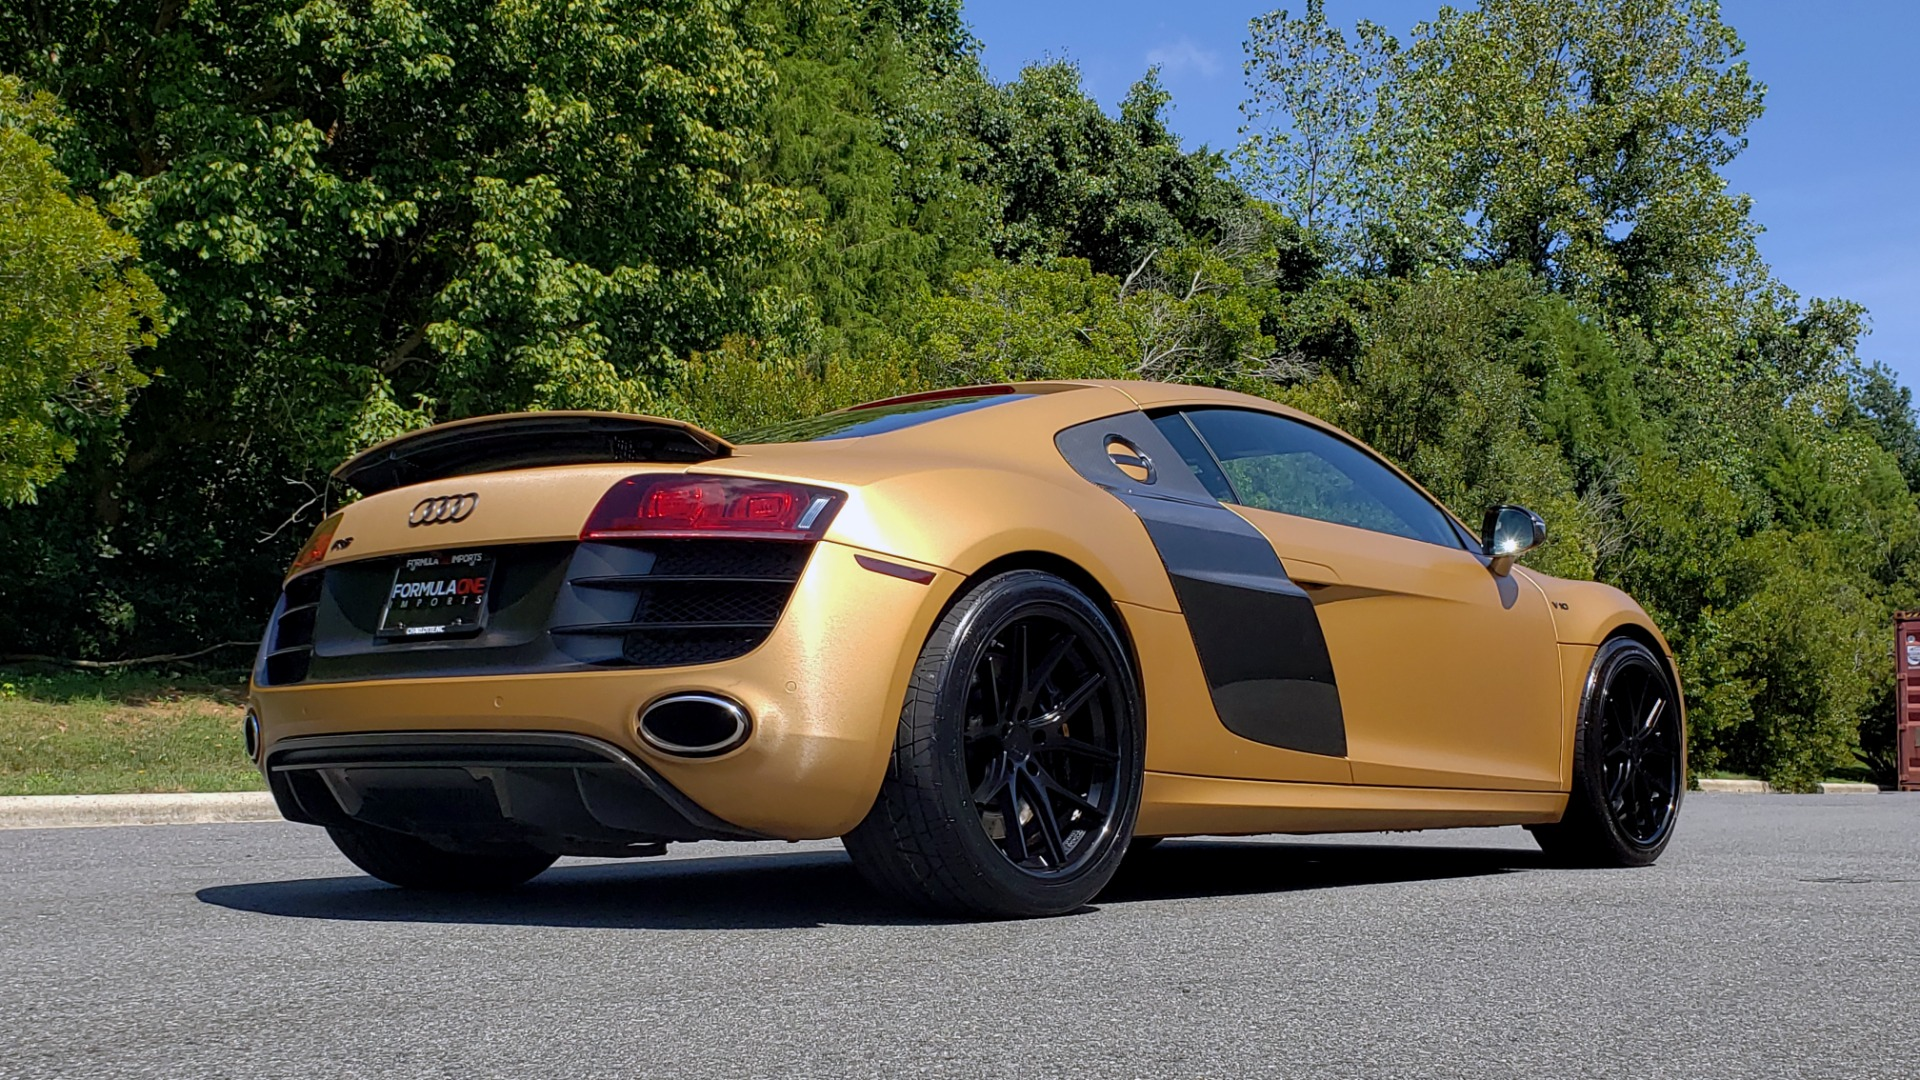 Used 2012 Audi R8 5.2L V10 / AWD / COUPE / NAV / 6-SPD AUTO / CUSTOM WRAP for sale Sold at Formula Imports in Charlotte NC 28227 8